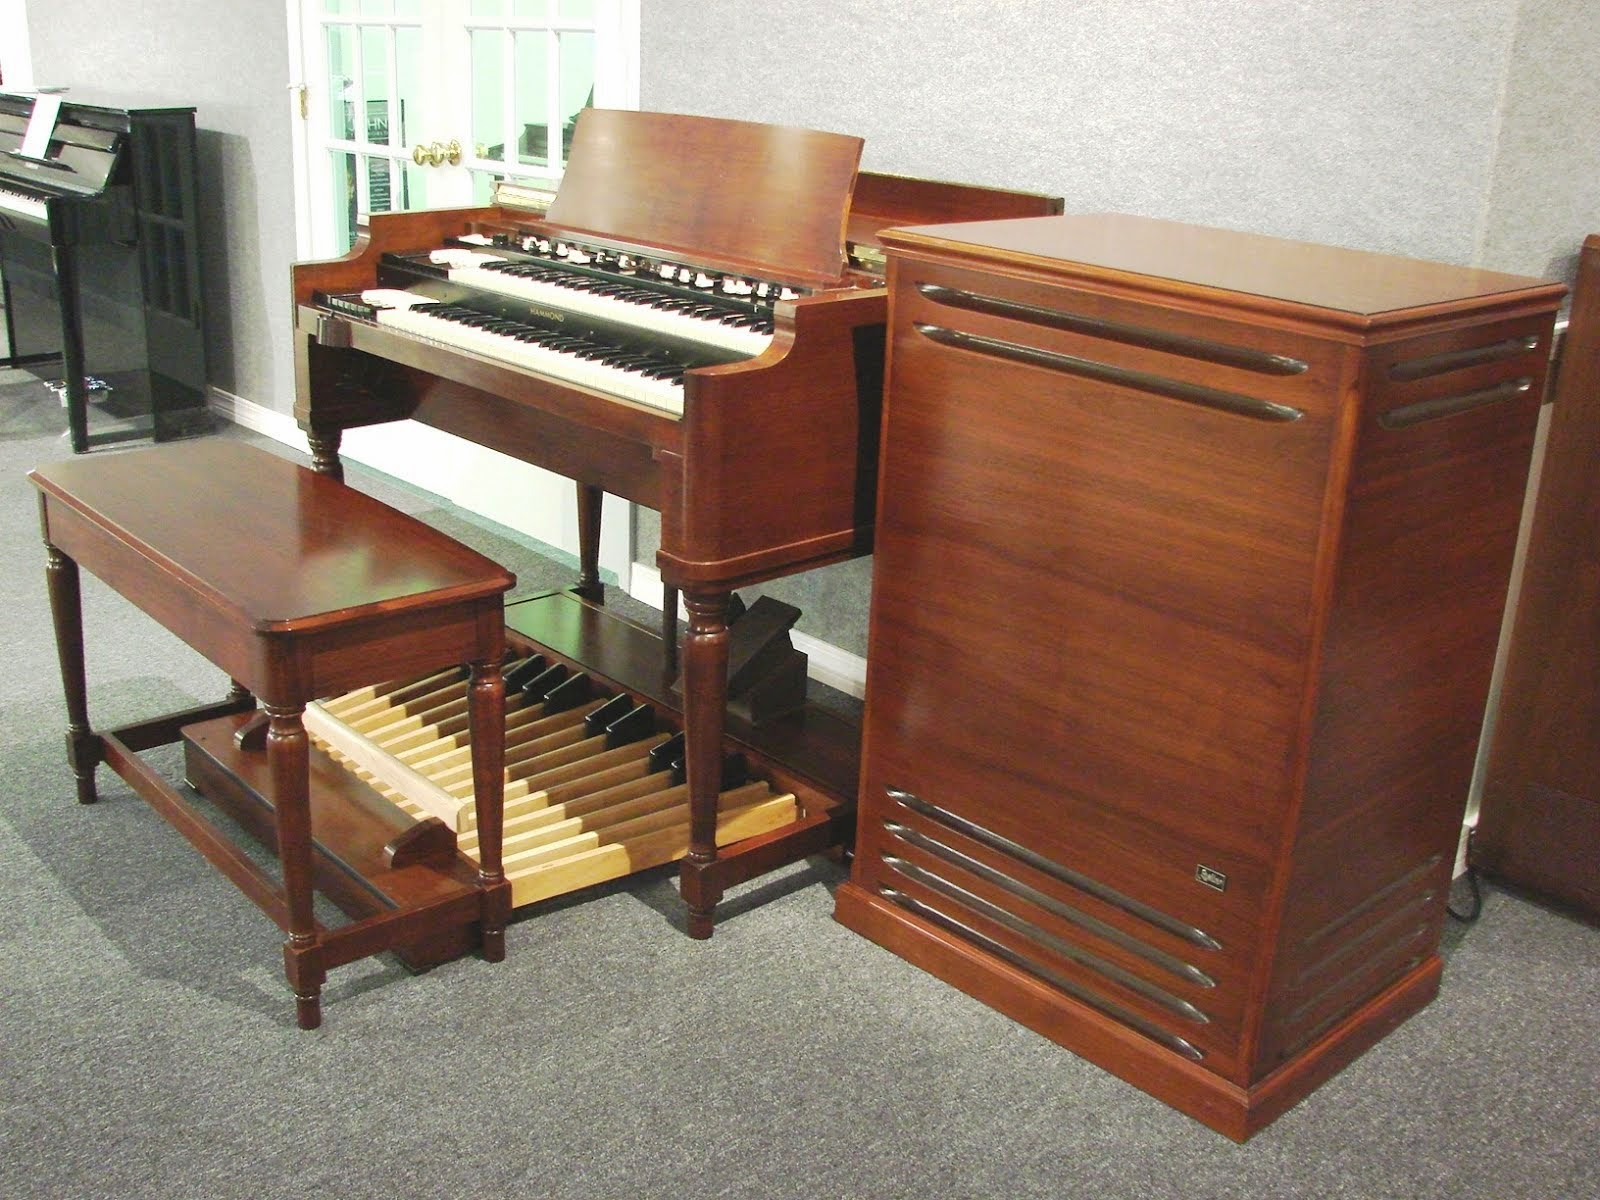 New Hammond B3 Organ with 971 Leslie Speaker Cabinet Pre-Owned